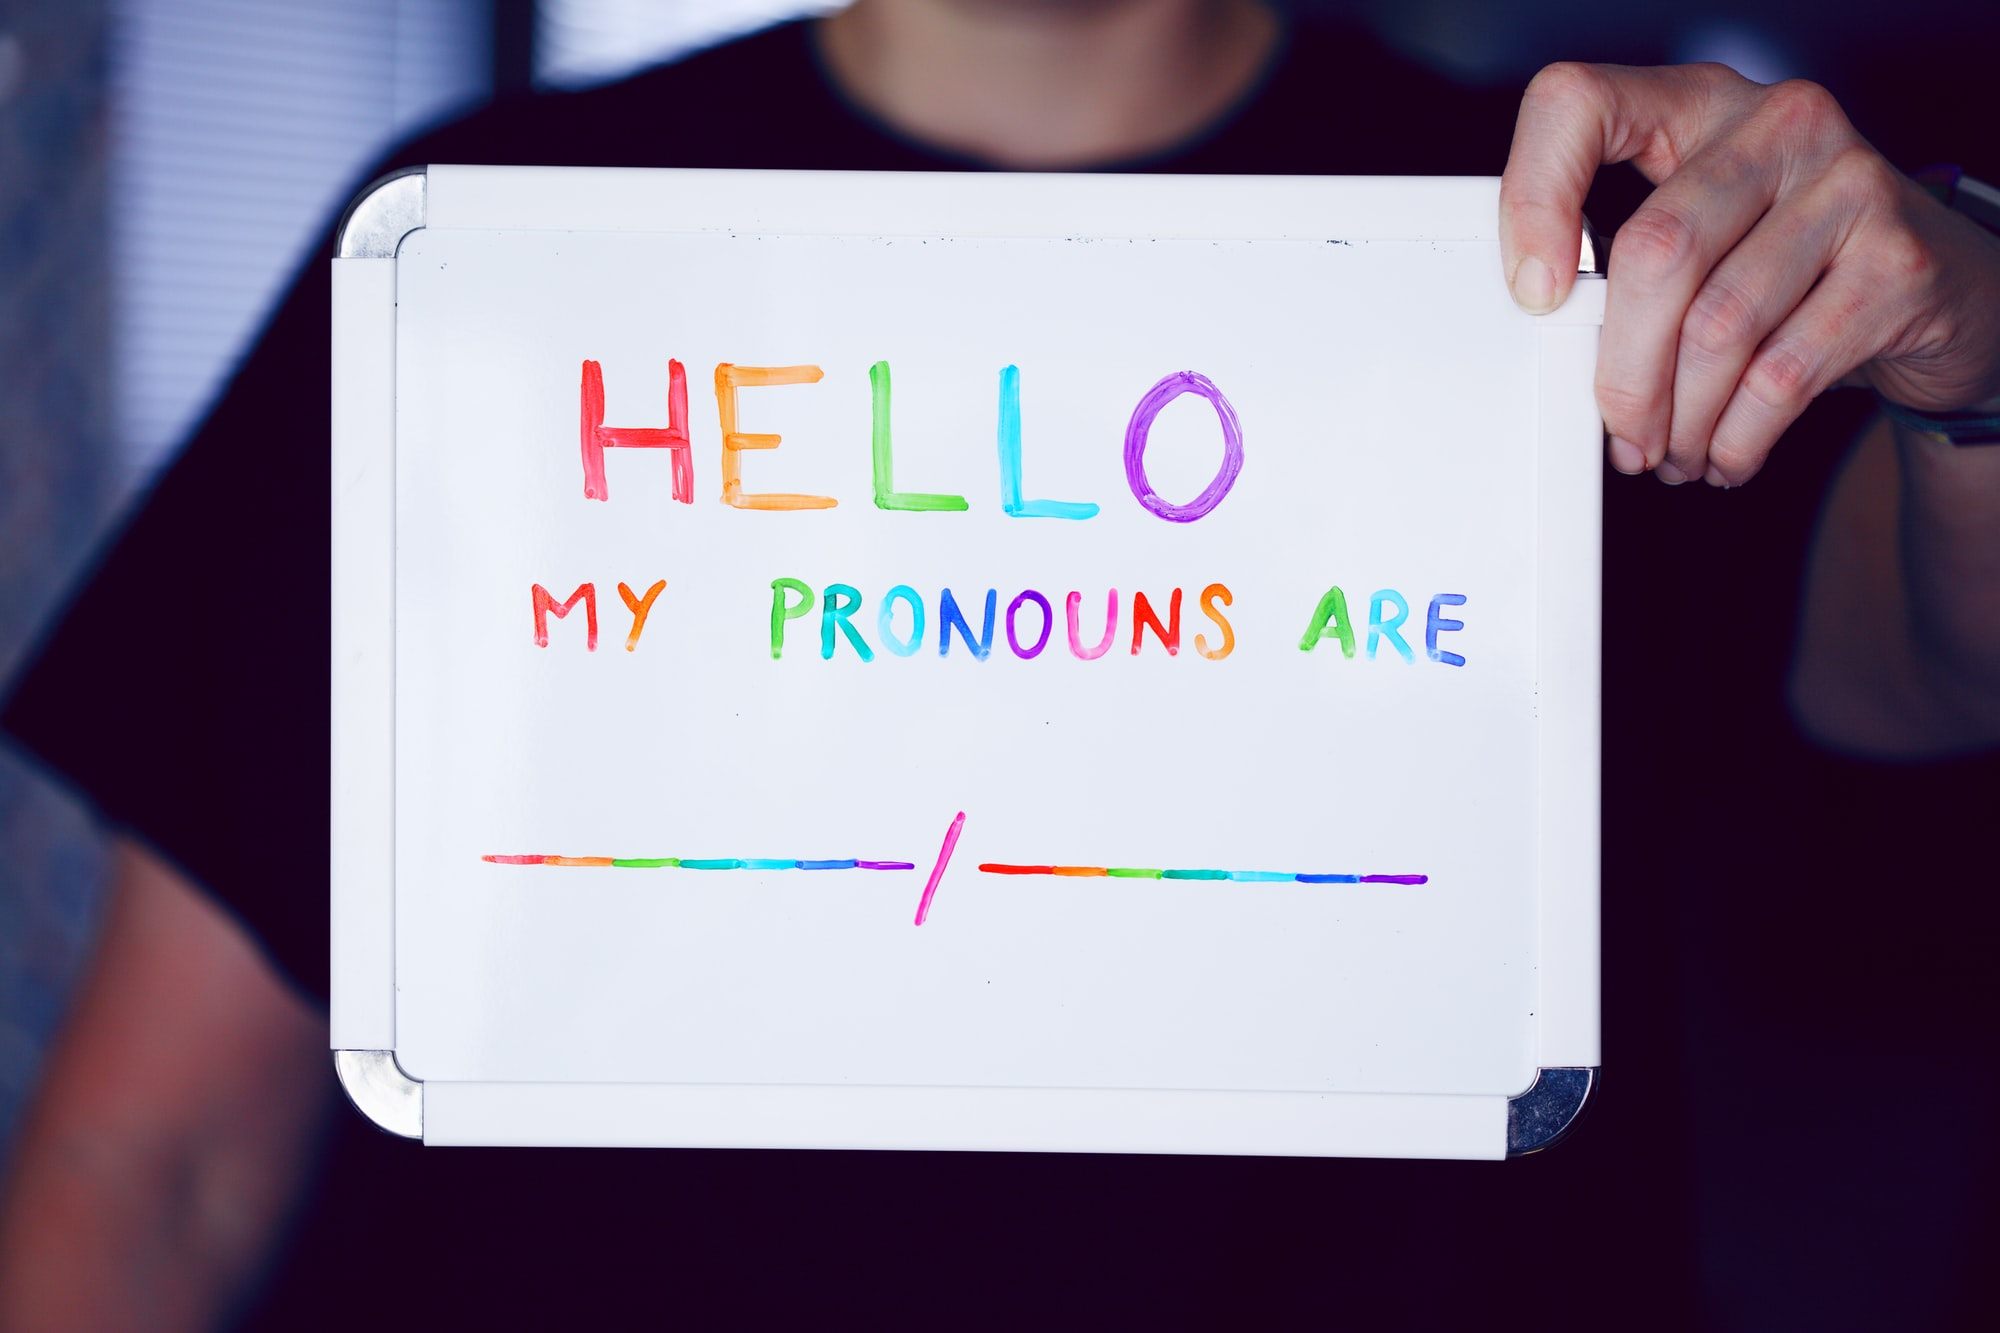 Pronouns matter. Pronouns are important. Everyone is valid. She/Her, He/Him, They/Them, Ze/Zim, and many more. Don't be afraid to ask which pronouns someone may prefer.